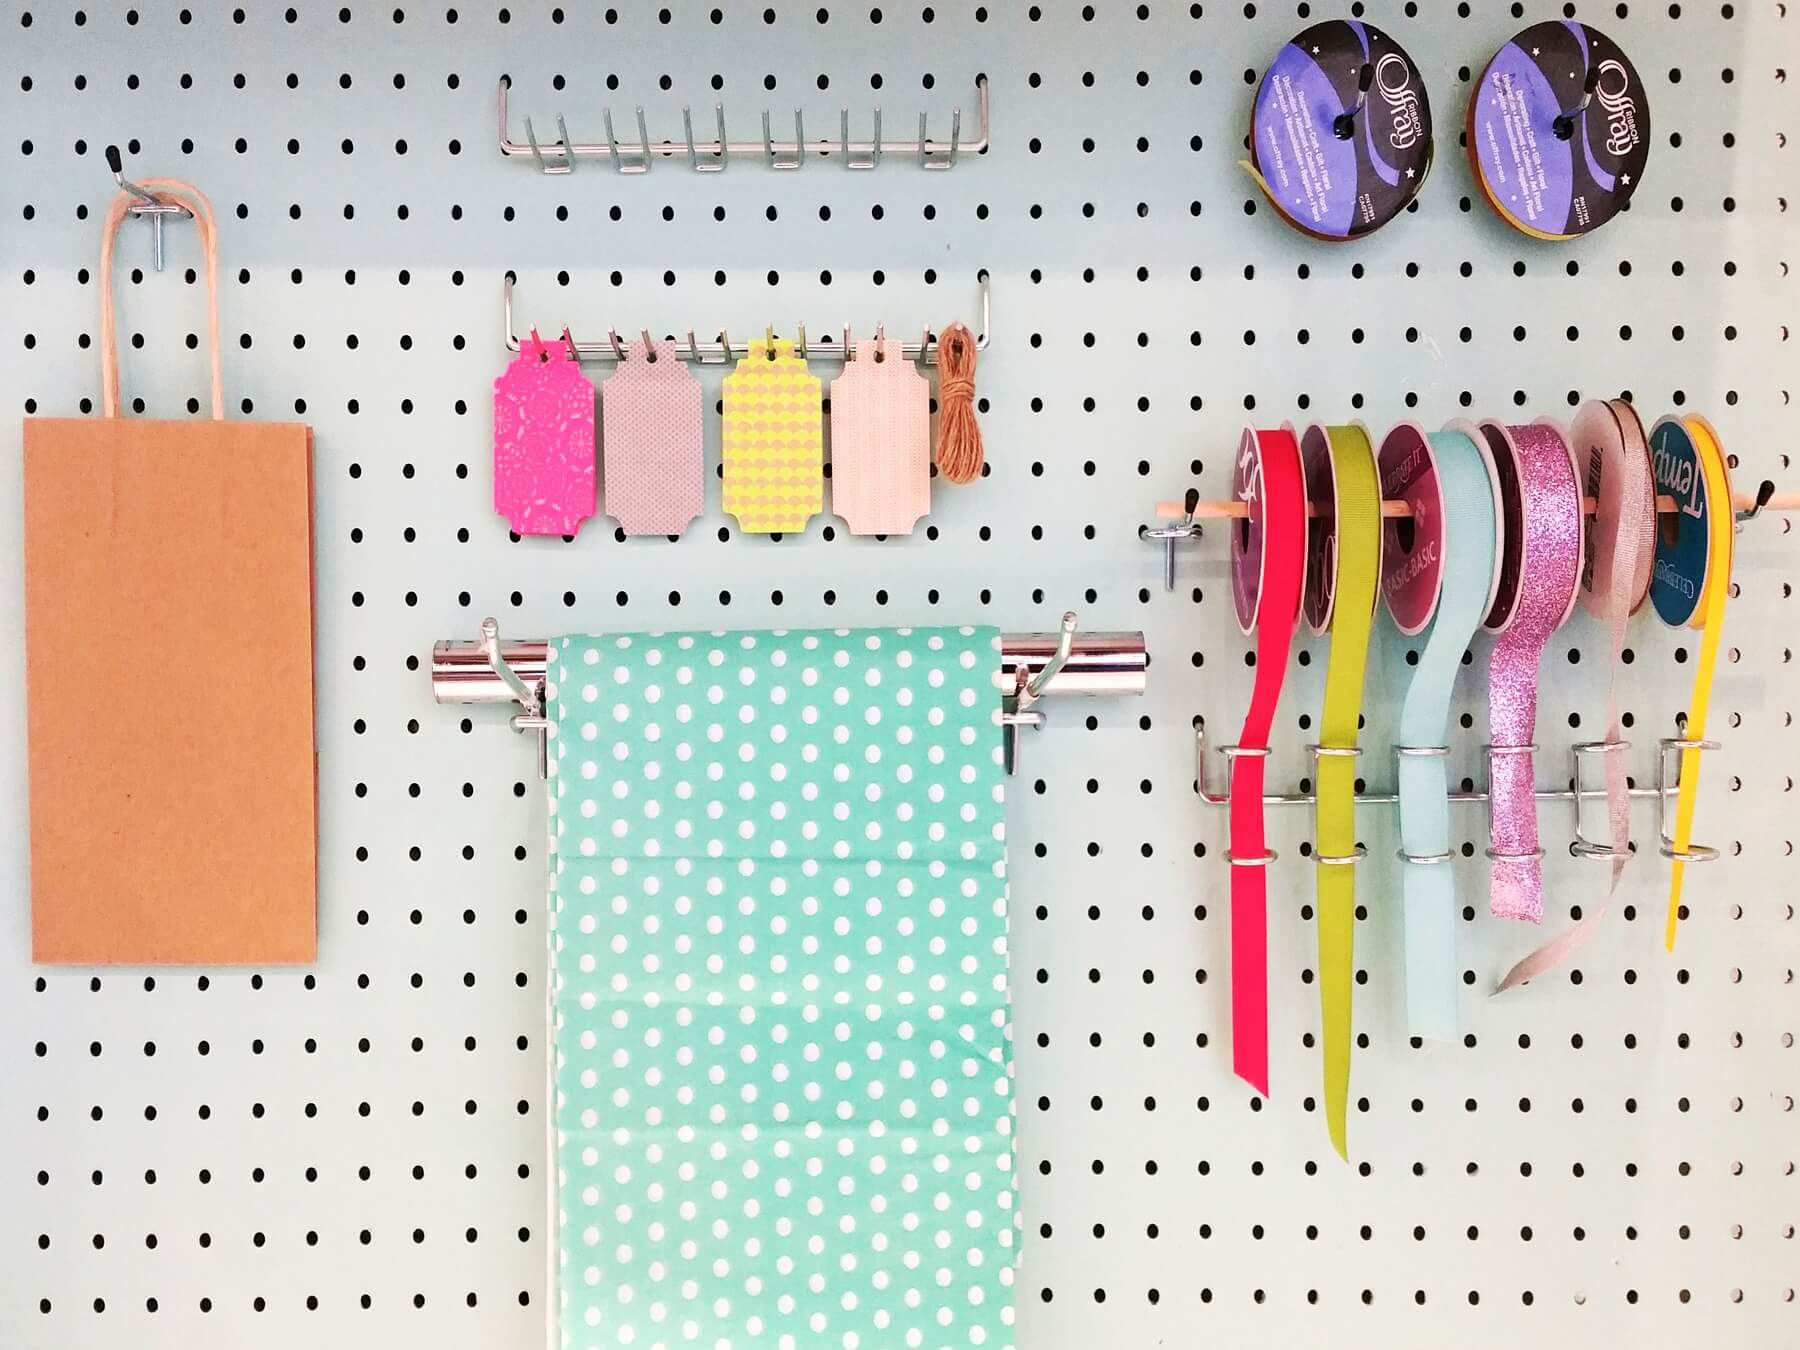 Peg board organization can be customized to meet your needs.